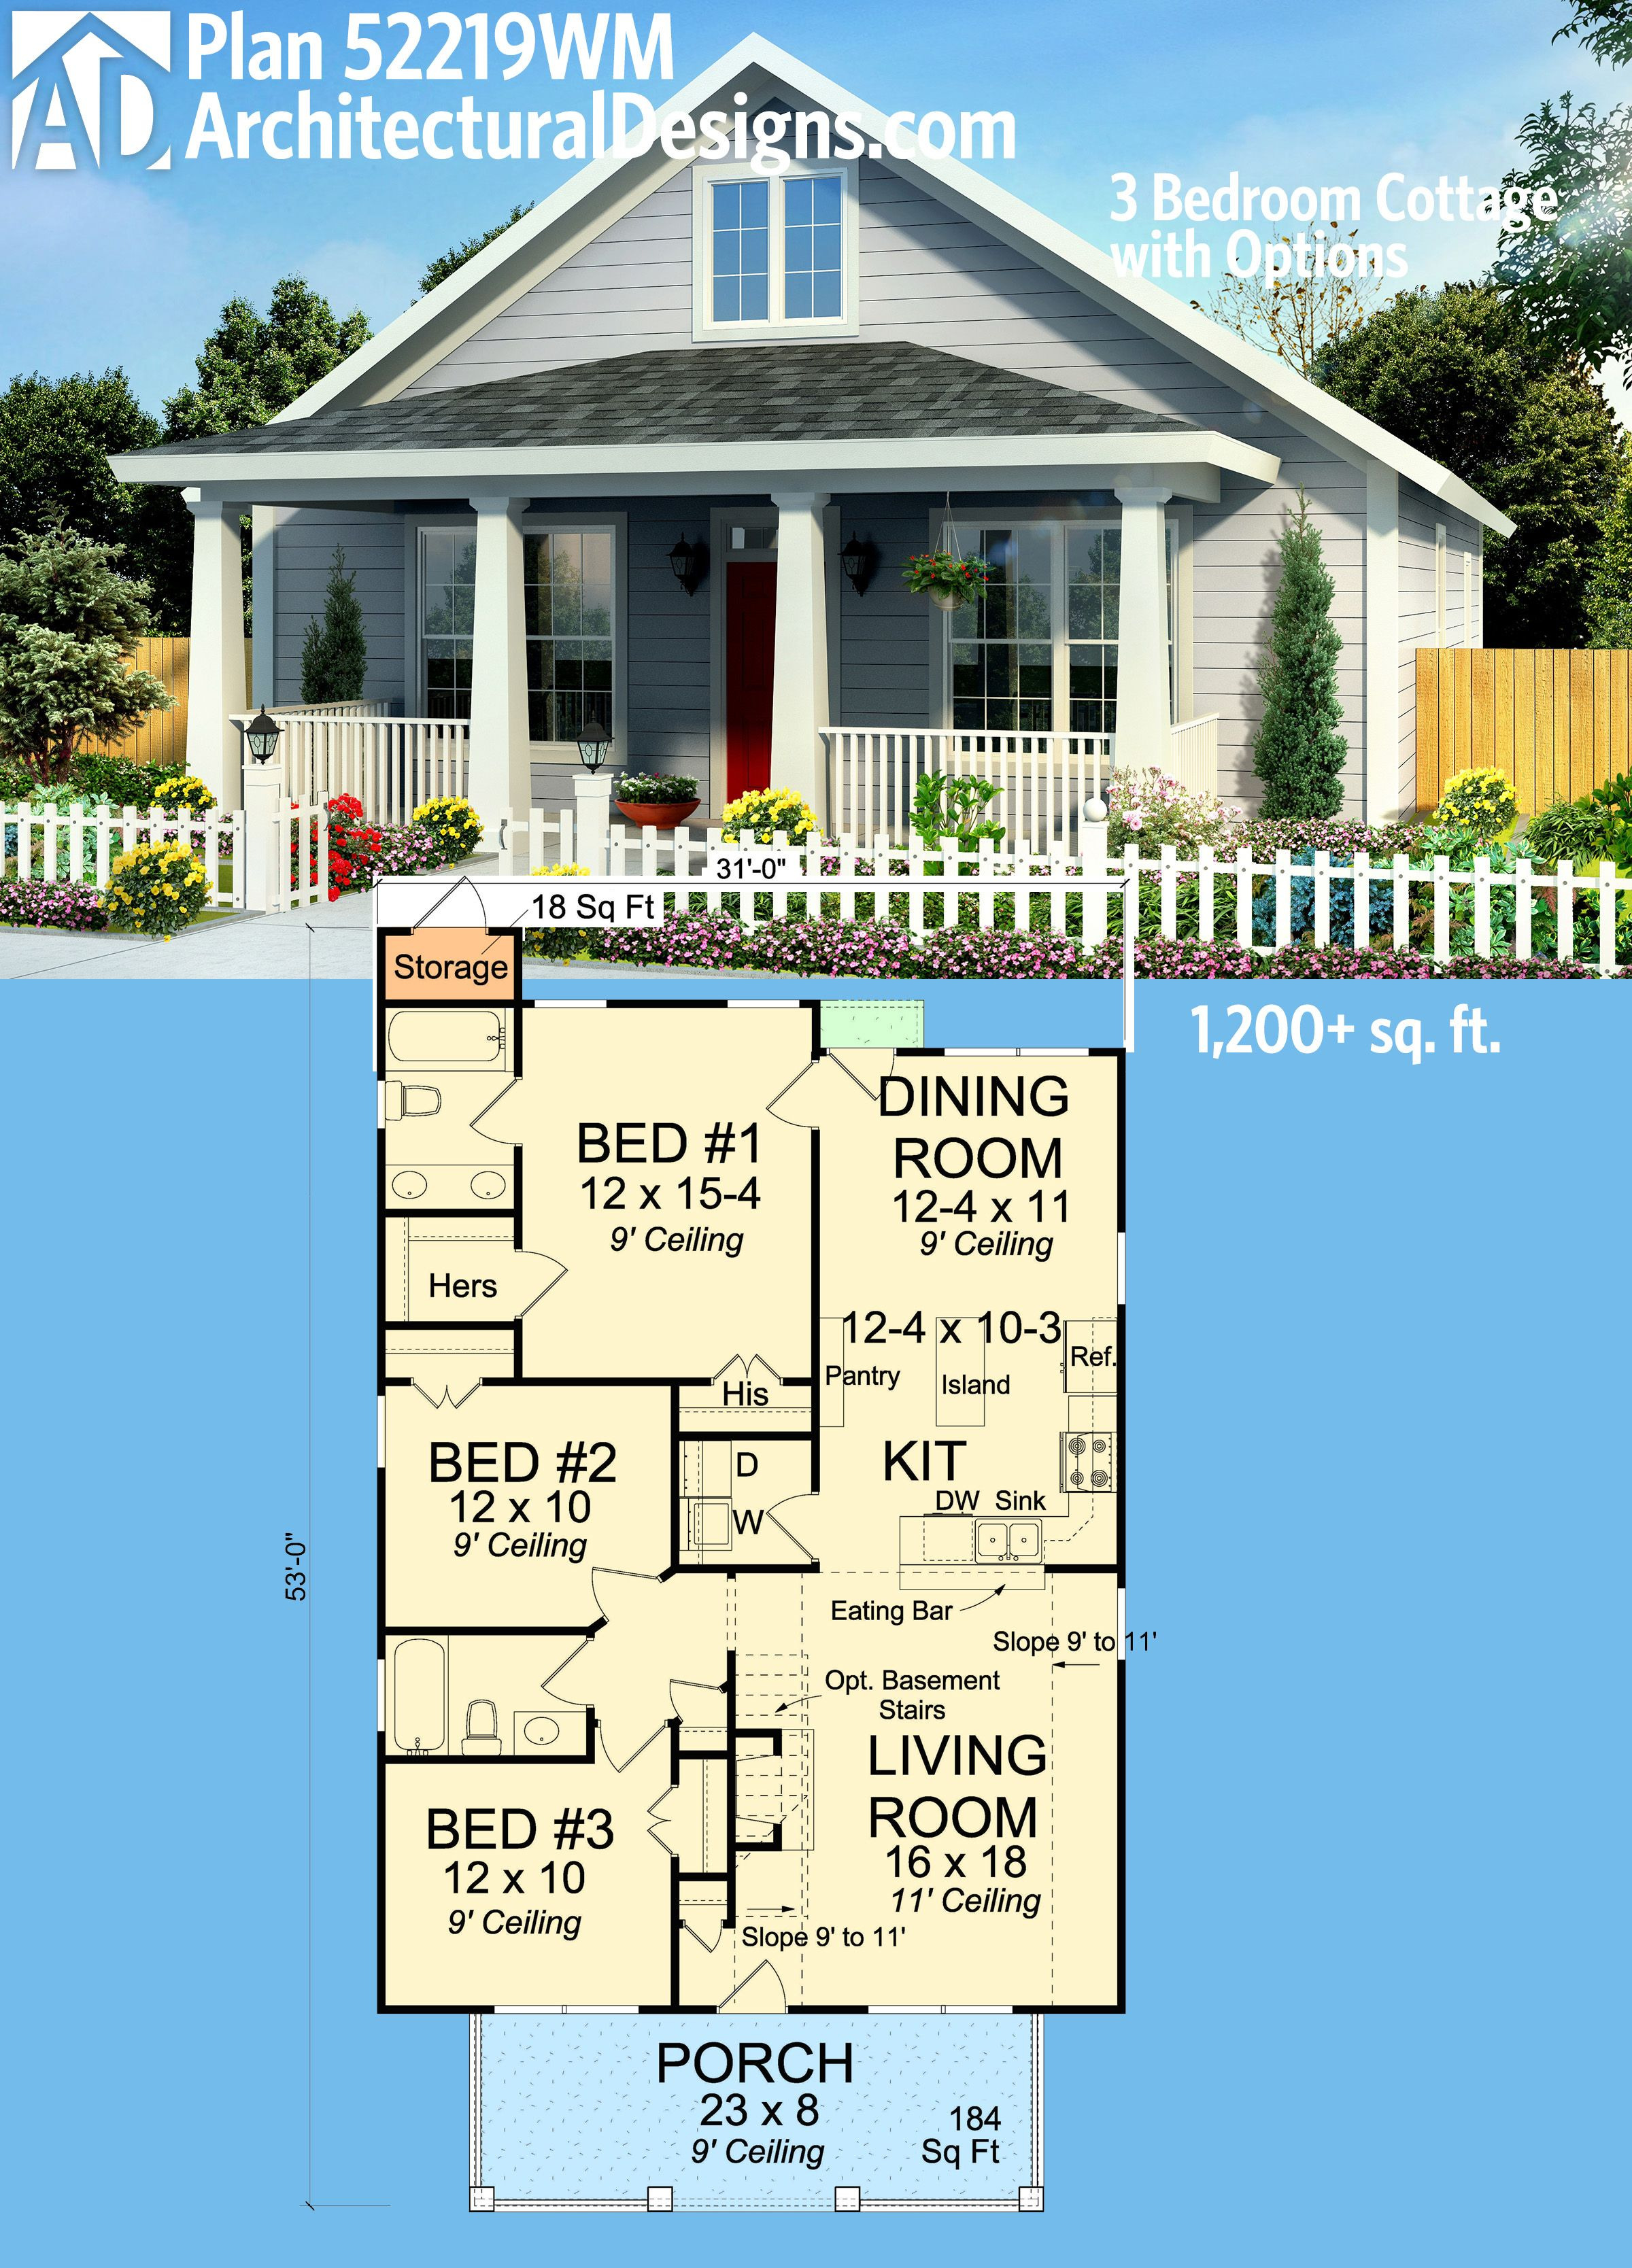 Cost Of Building A 3 Bedroom House Luxury Plan Wm 3 Bedroom Cottage with Options